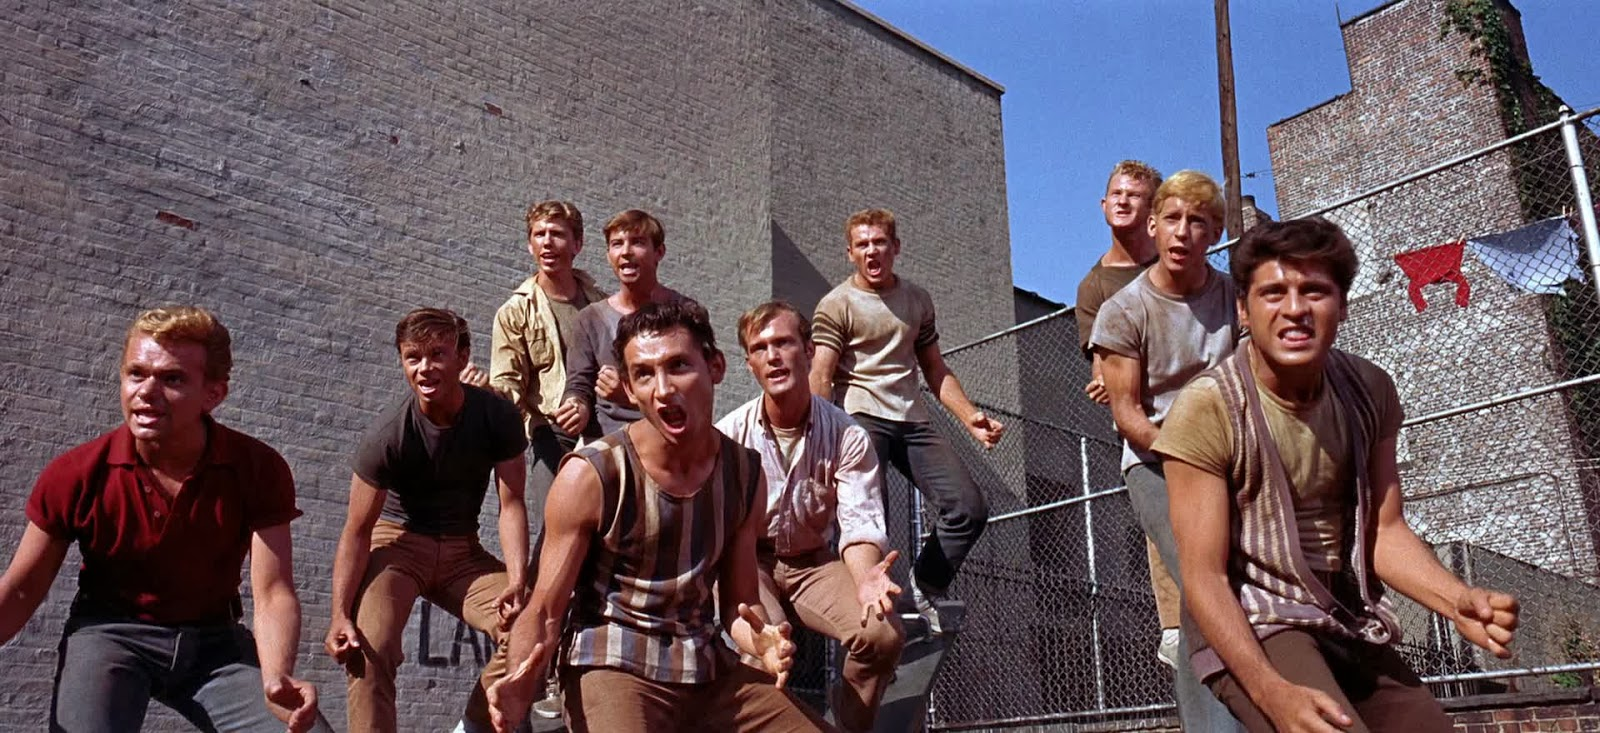 an analysis of west side story by jerome robbins West side story (1961) the first order of business in bringing west side story to the screen was casting this was left largely to robert wise, who had been chosen as co-director primarily for his work with film actors (stage choreographer-director jerome robbins would handle the musical sequences.